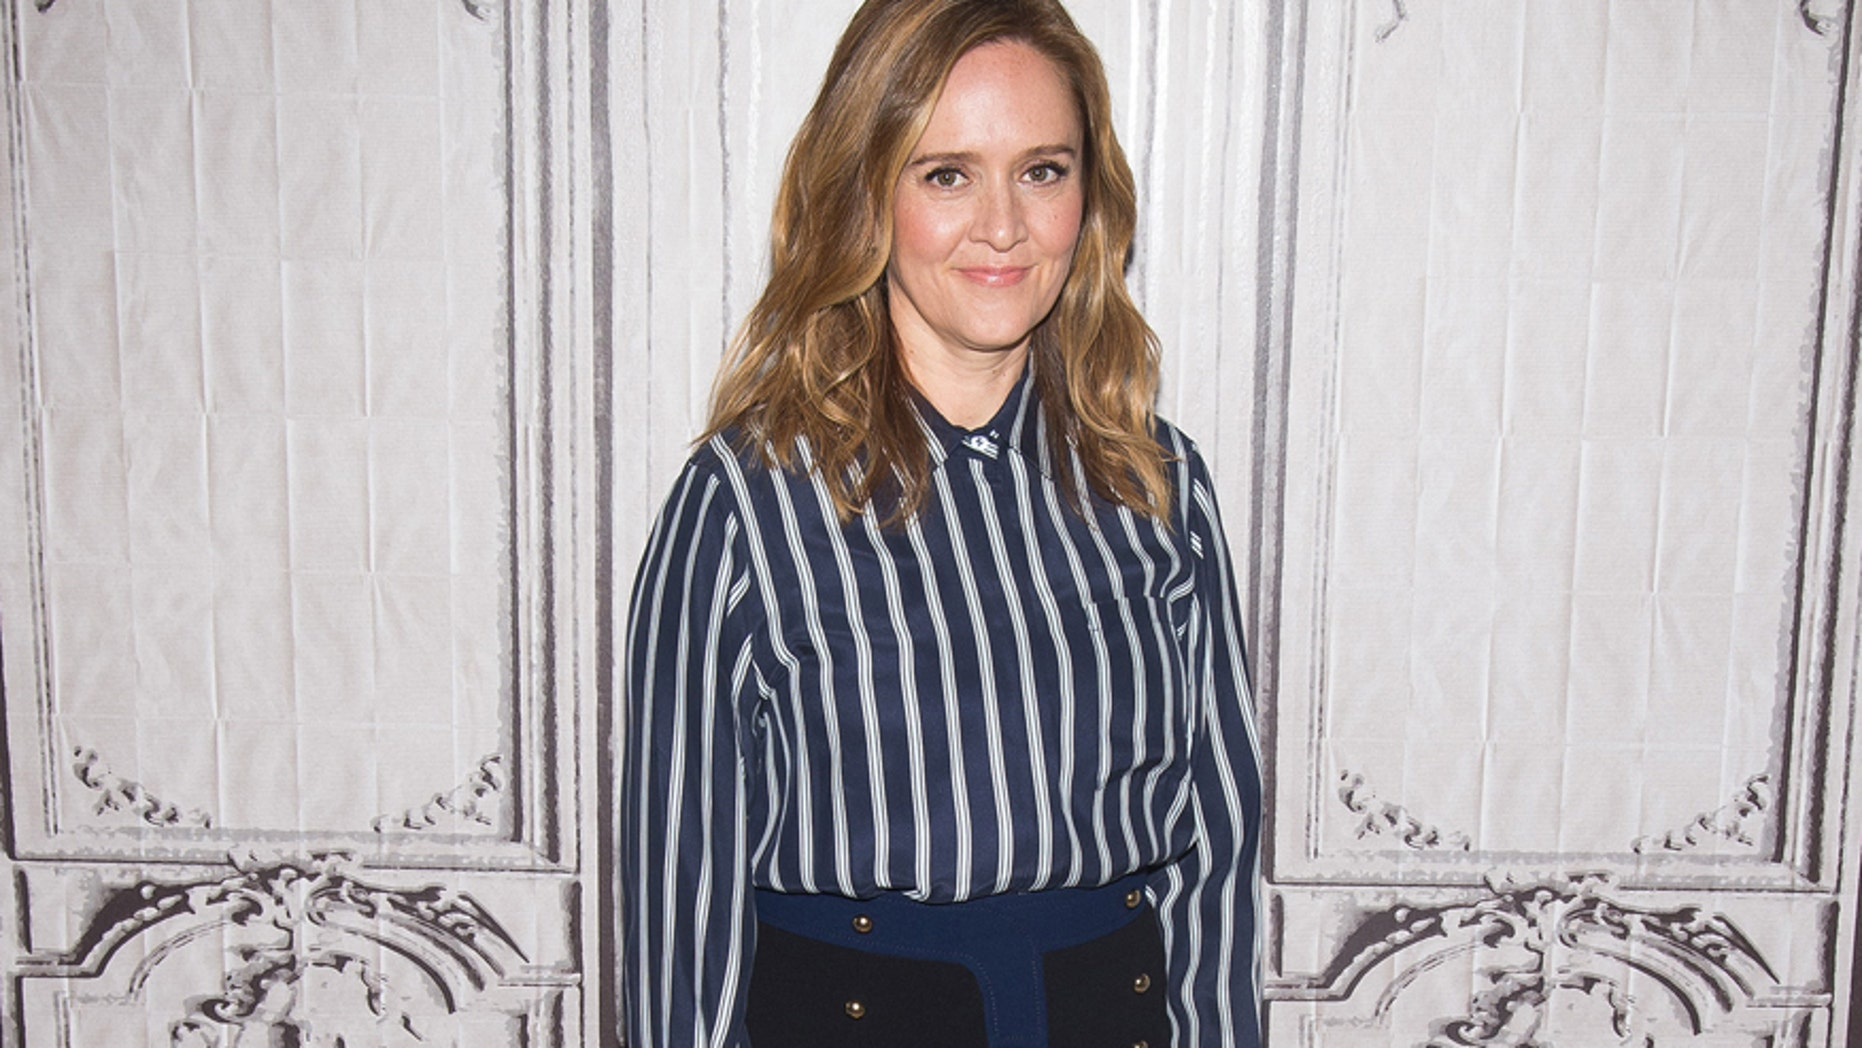 """Samantha Bee participates in AOL's BUILD speaker series to discuss her new TBS series """"Full Frontal with Samantha Bee"""" at AOL Studios on Wednesday, April 6, 2016, in New York. (Photo by Charles Sykes/Invision/AP)"""